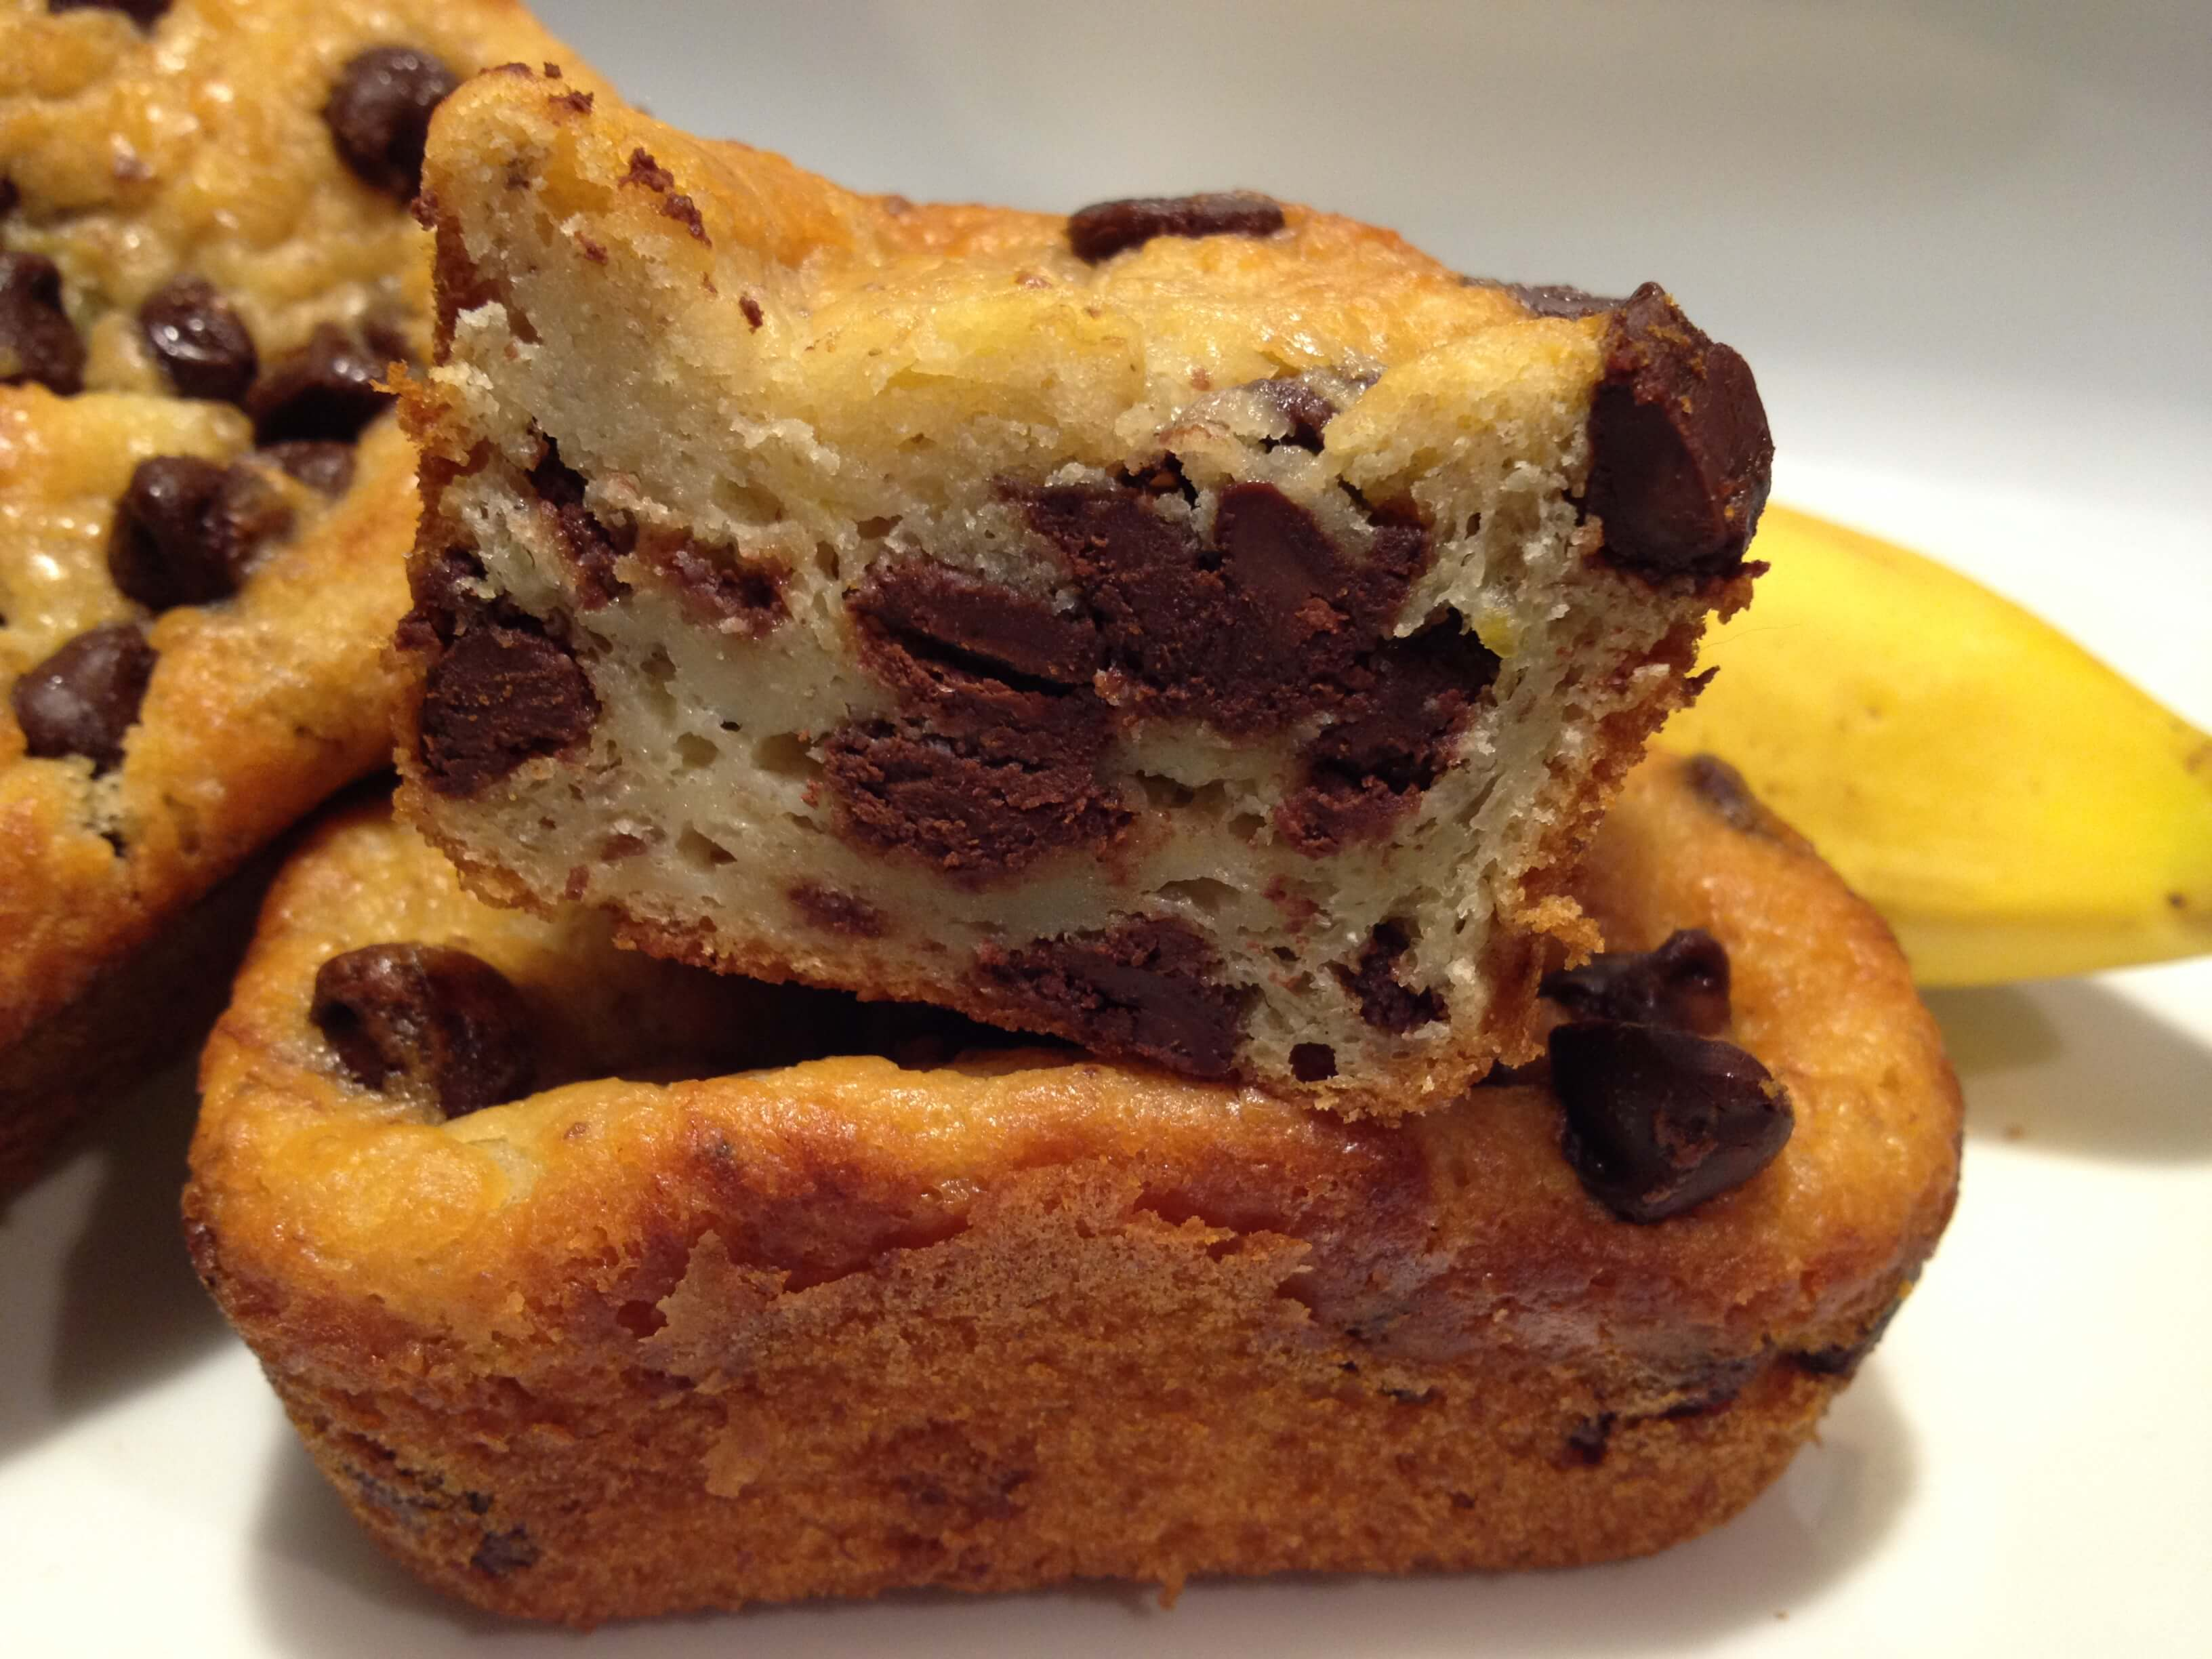 Banana chocolate chip muffins loaves 4Banana chocolate chip muffins loaves 4